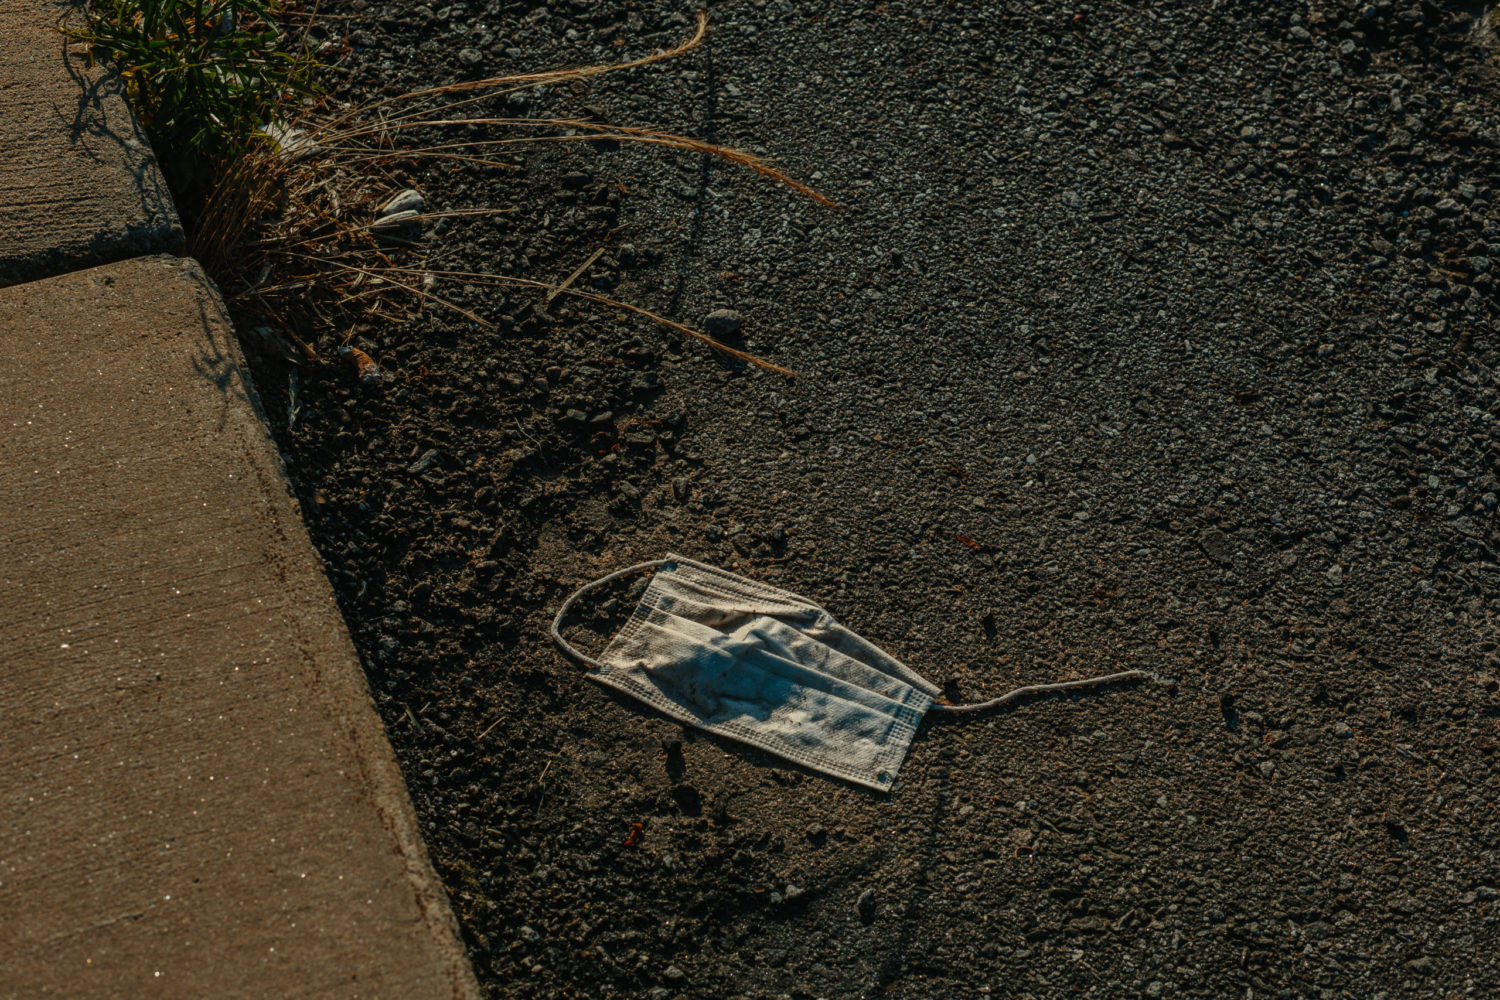 A discarded surgical mask lies in a parking lot near the Tyson processing facility in Wilkesboroon Sunday, May 24, 2020. At the plant, 570 workers have tested positive for the coronavirus. It's one of several outbreaks at meatpacking plants across the state. CREDIT: Jacob Biba for Carolina Public Press